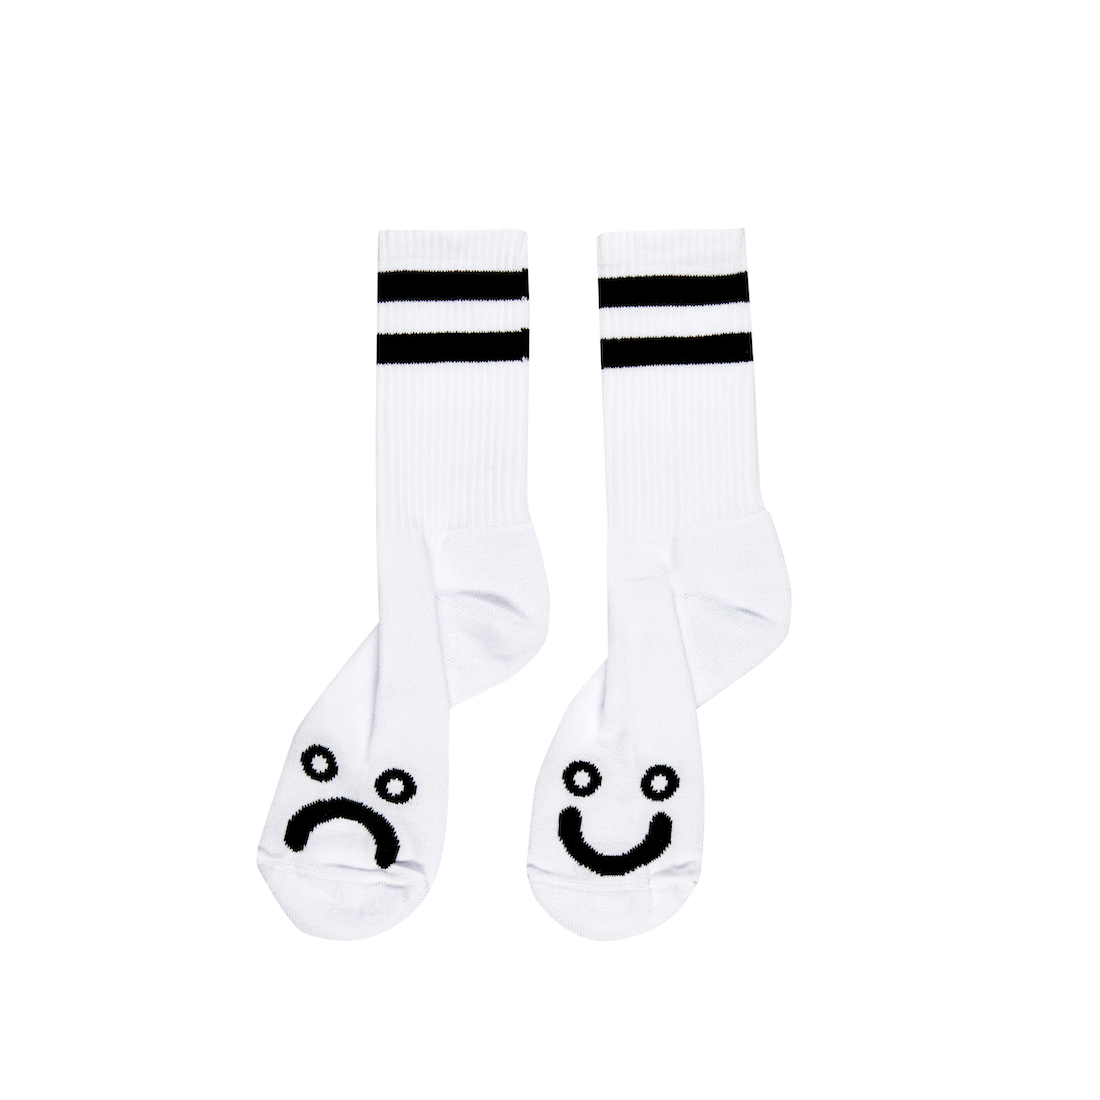 【POLAR SKATE CO.】Happy sad socks - White